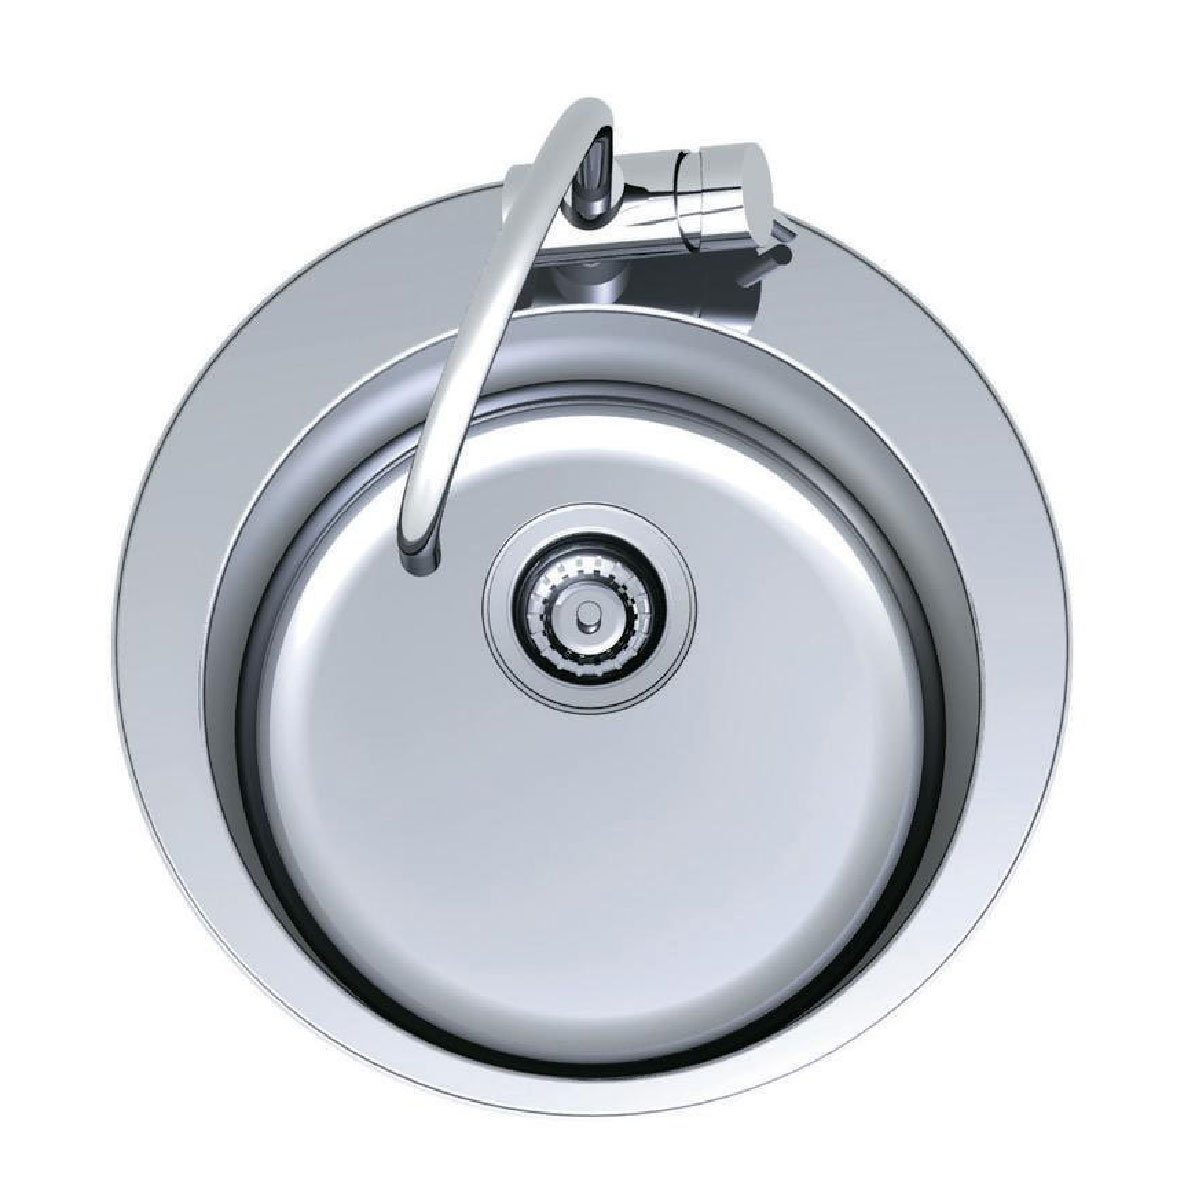 Clark Cellini Single Bowl Sink with Tap Landing - No Tap Hole 37521